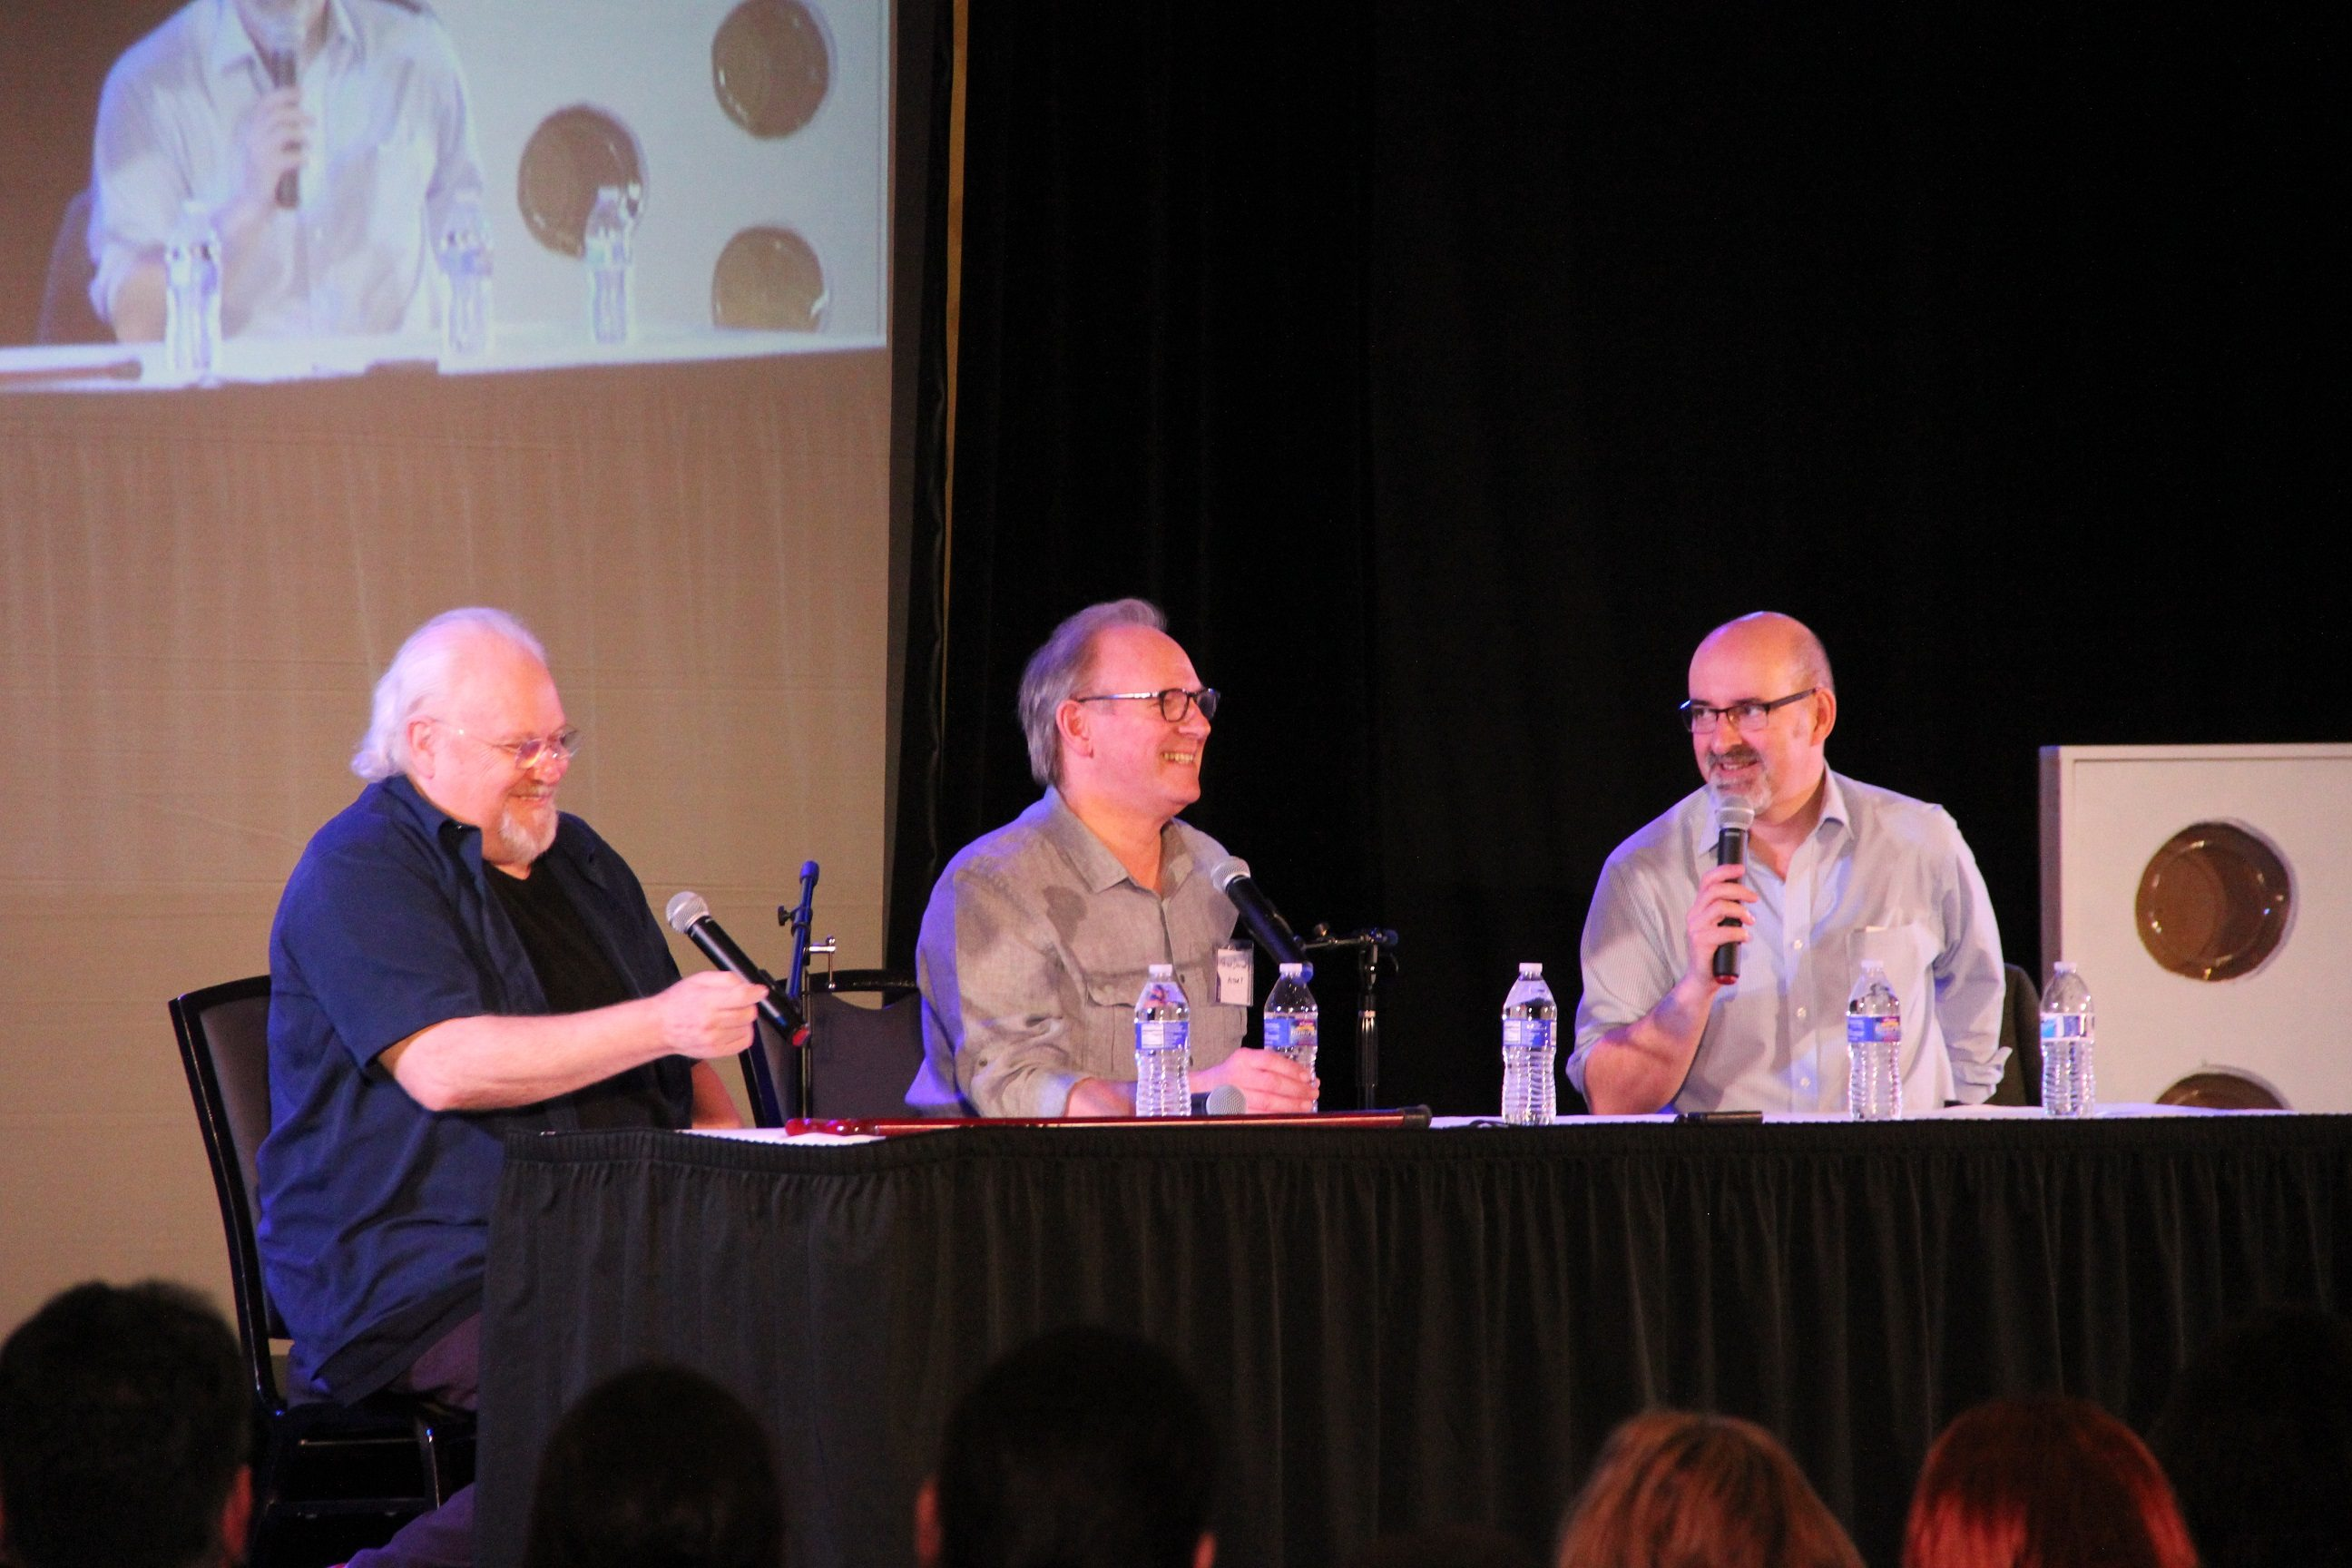 Colin Baker and Peter Davison in conversation with Nick Briggs